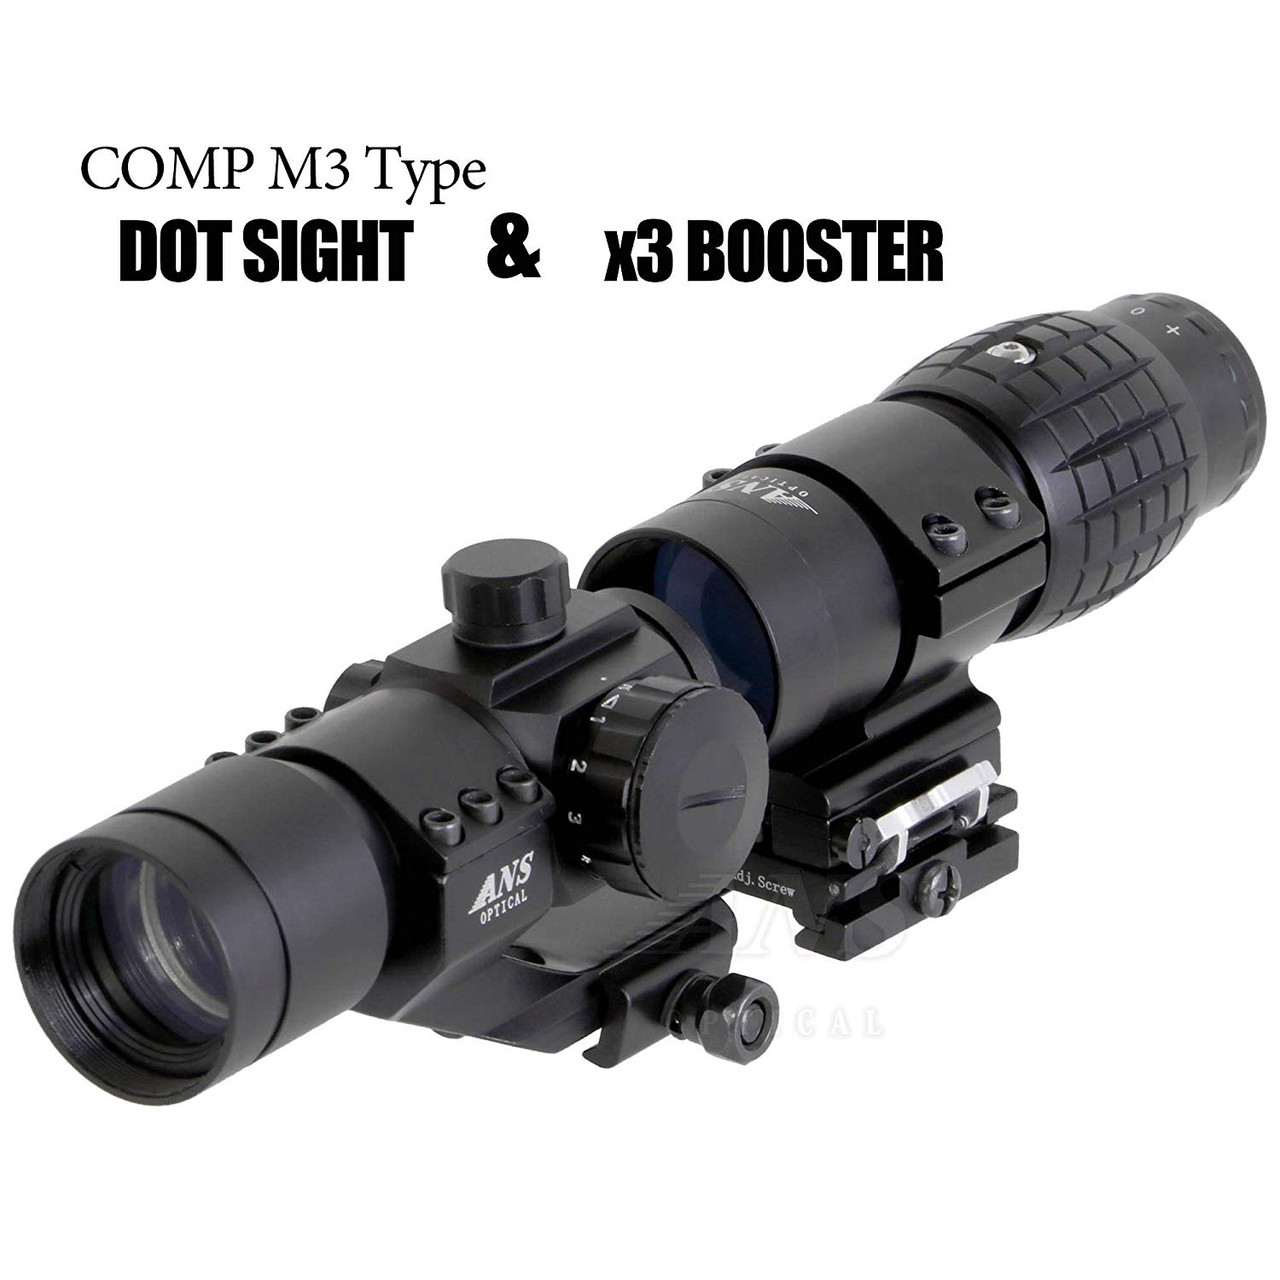 ANS set of EO HD L3 X3 Scope booster and AIM COMP M3 dot sight